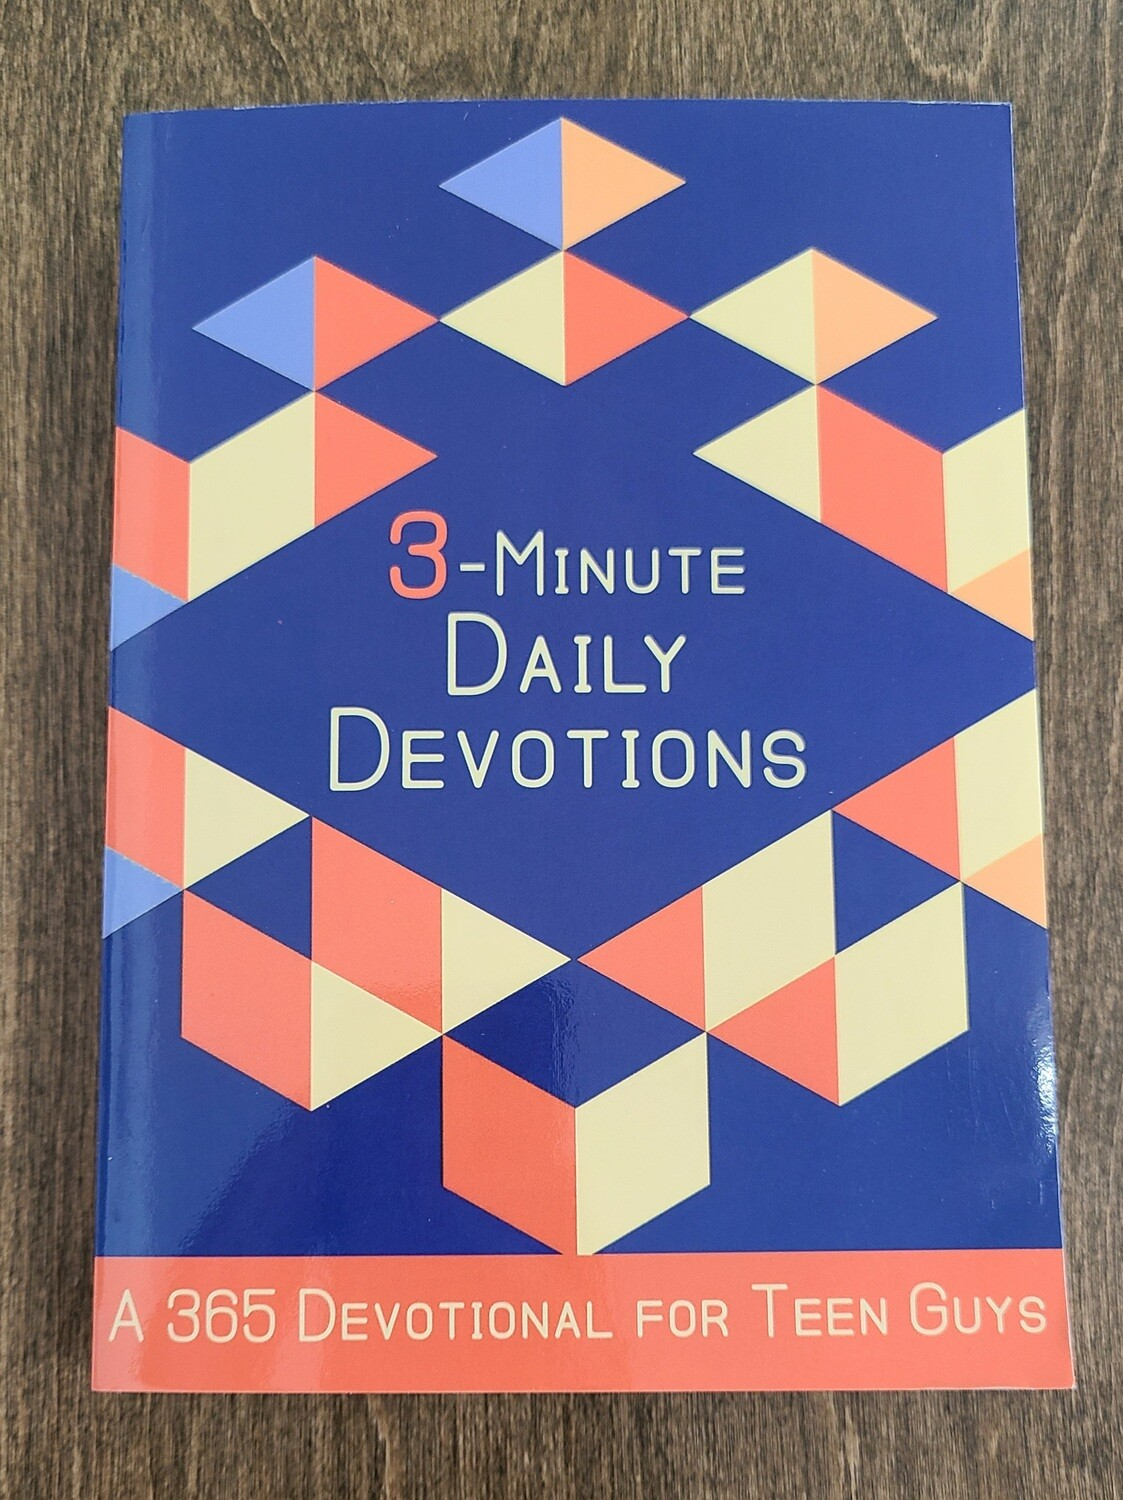 3-Minute 365 Daily Devotions for Teen Guys by Jesse Campbell